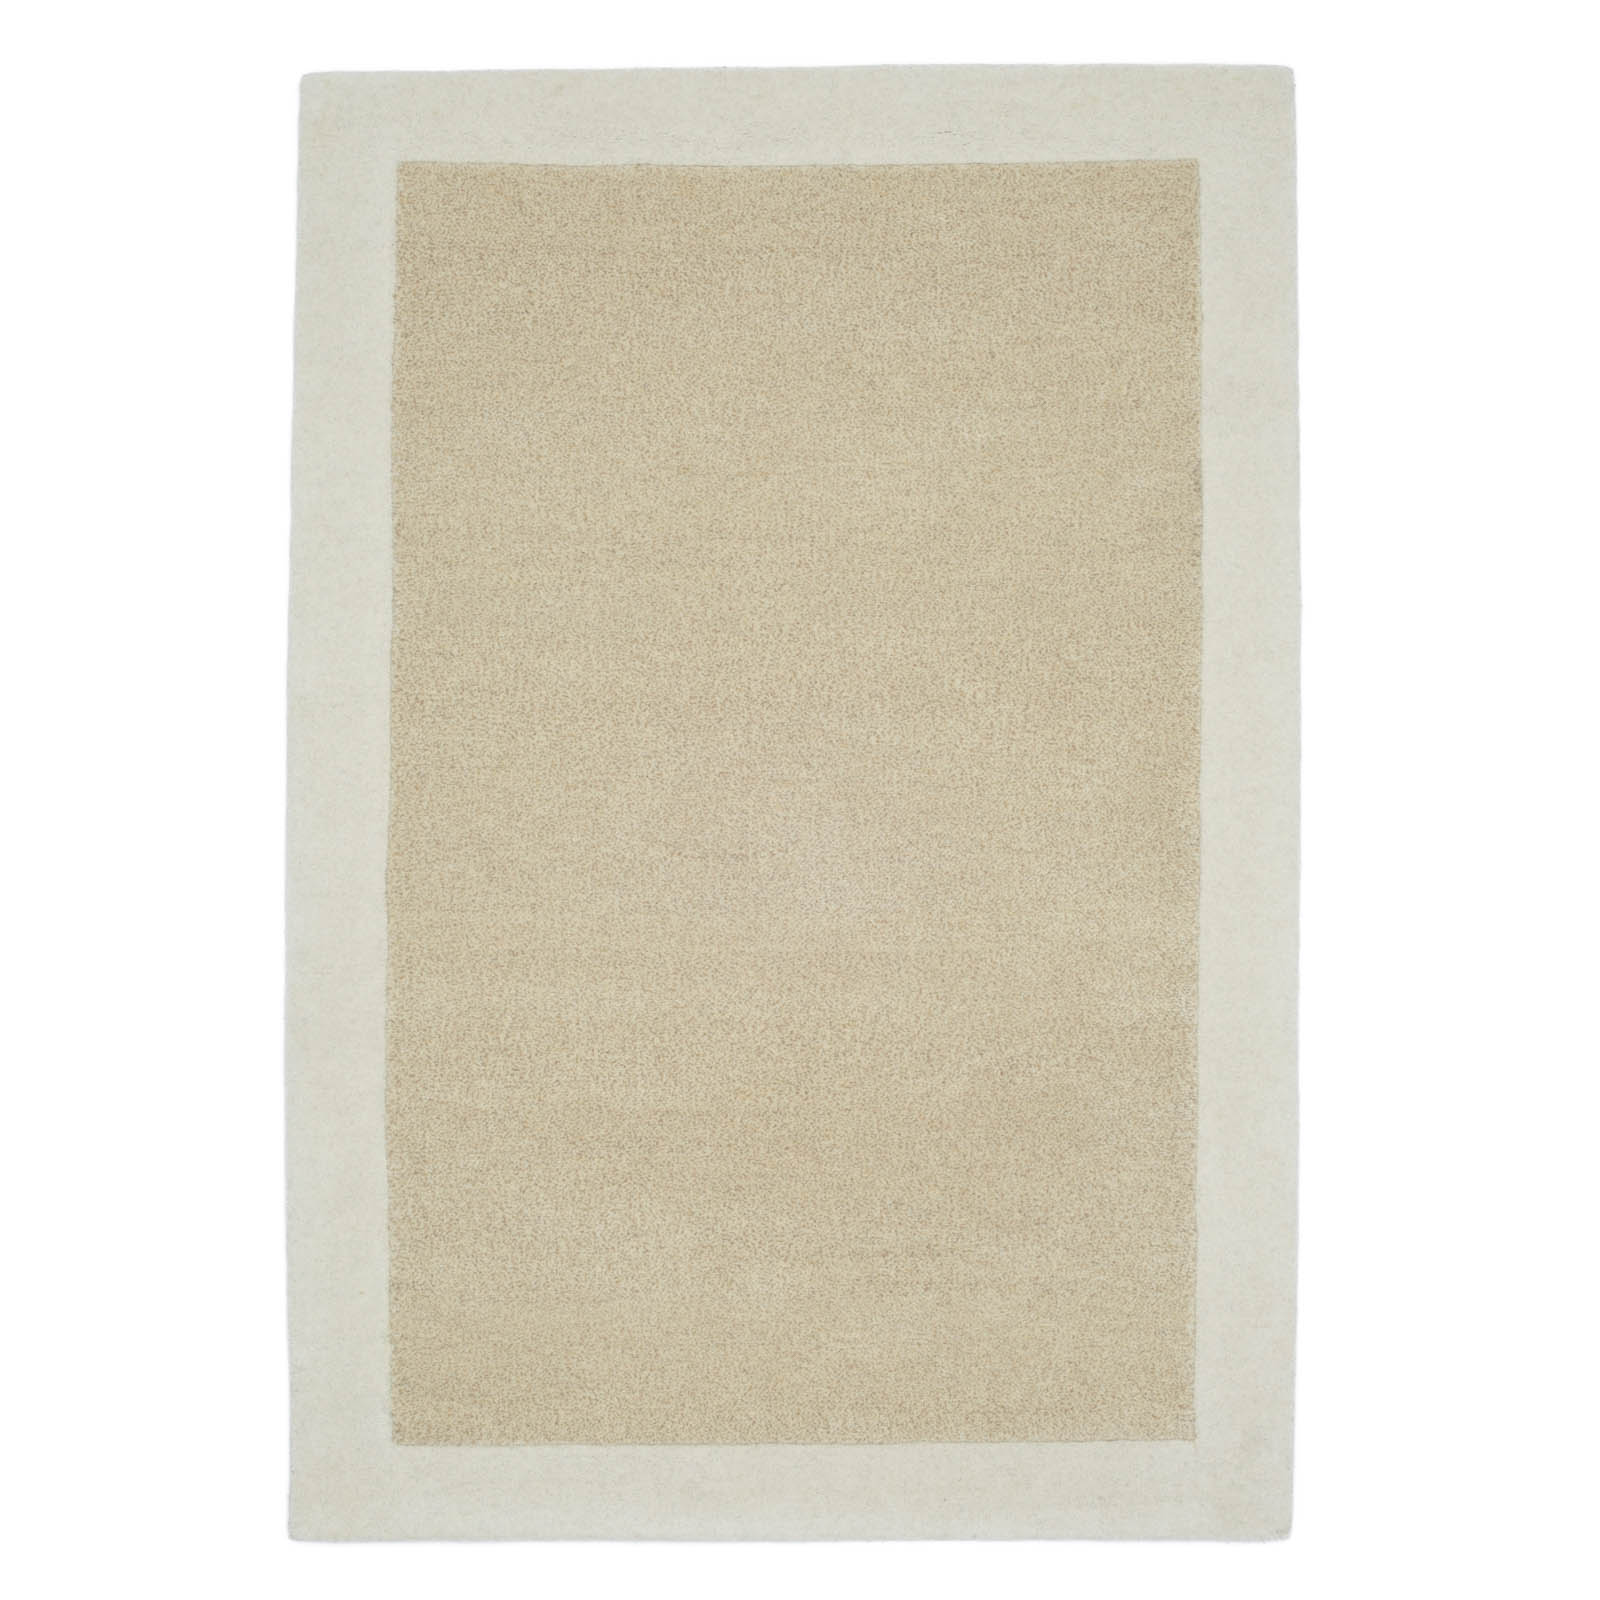 Steppes Border Rugs in Cream